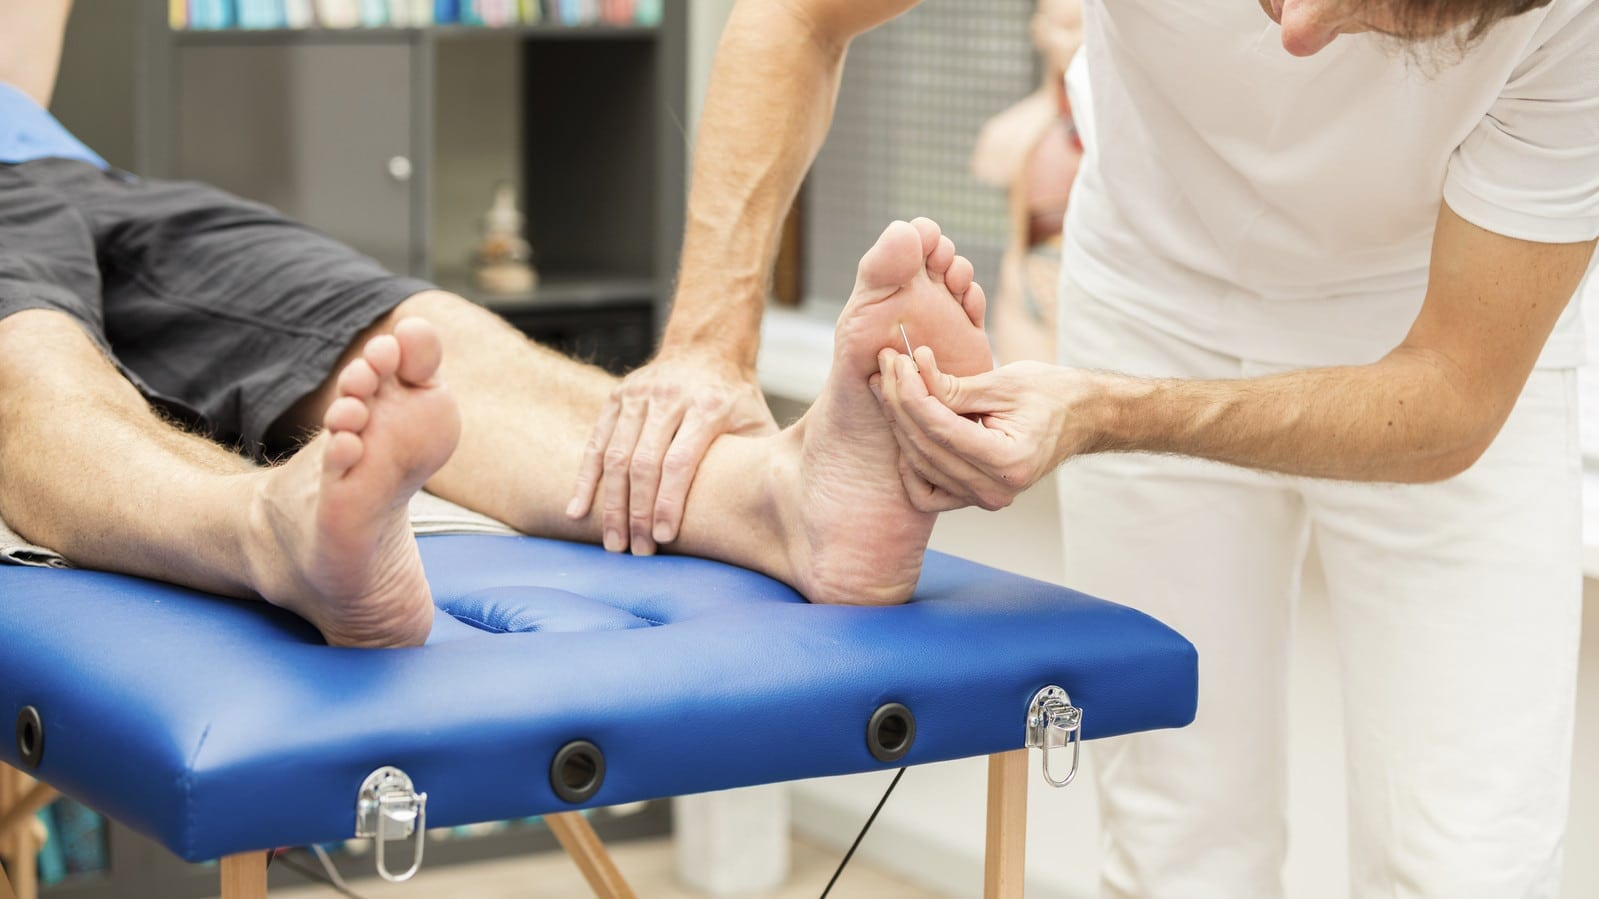 Foot Being Examined By Medical Professional Stock Photo